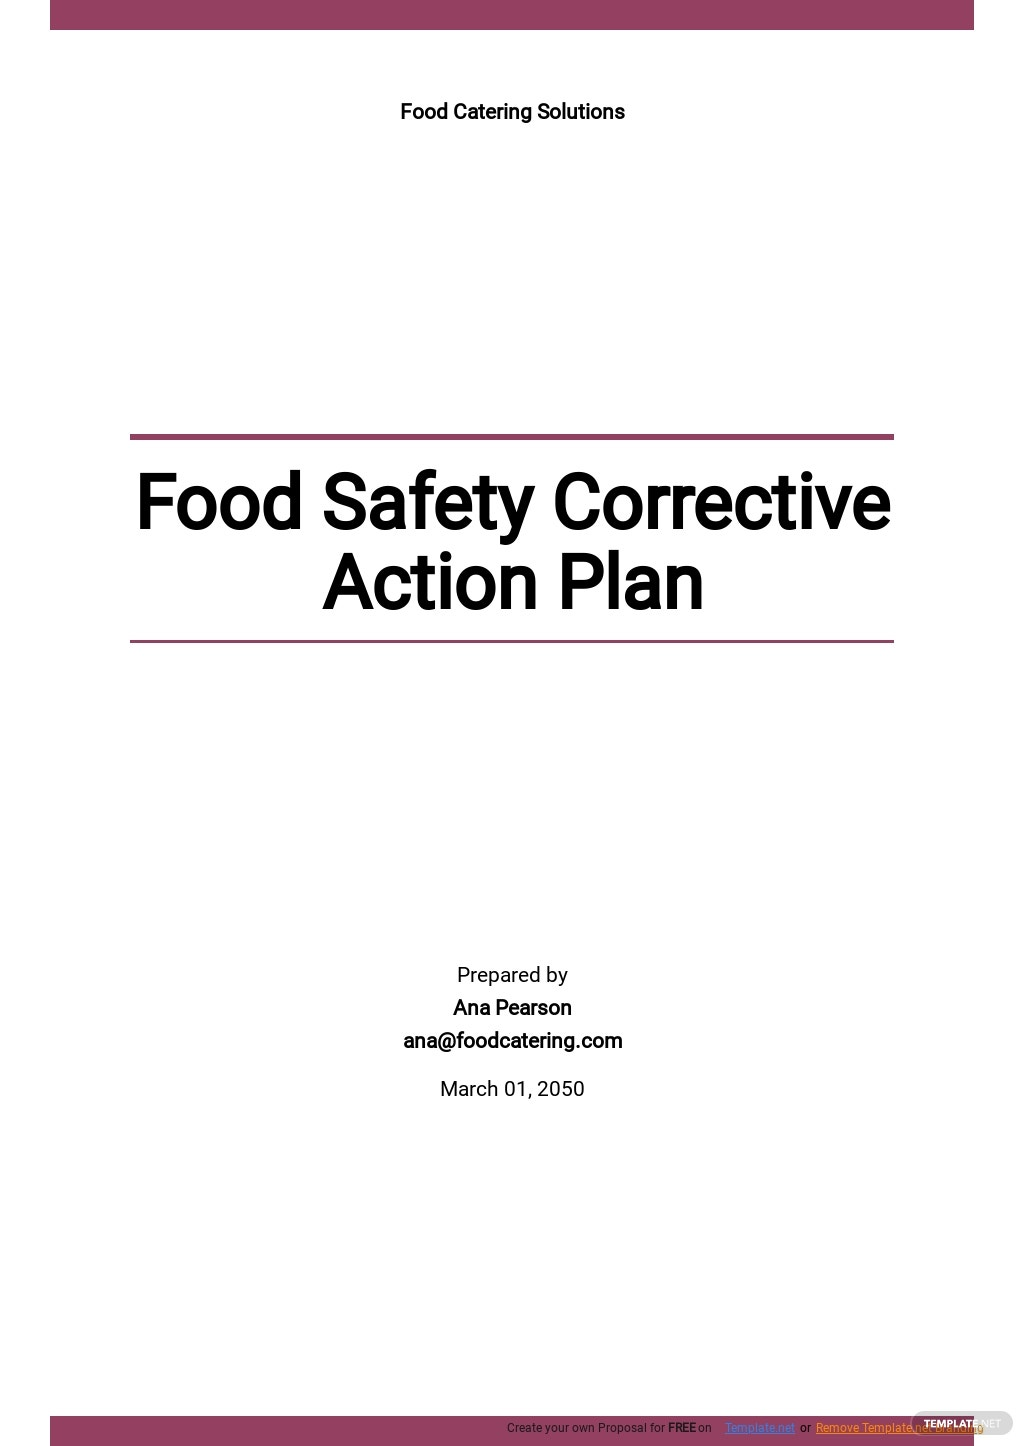 Food Safety Corrective Action Plan Template .jpe